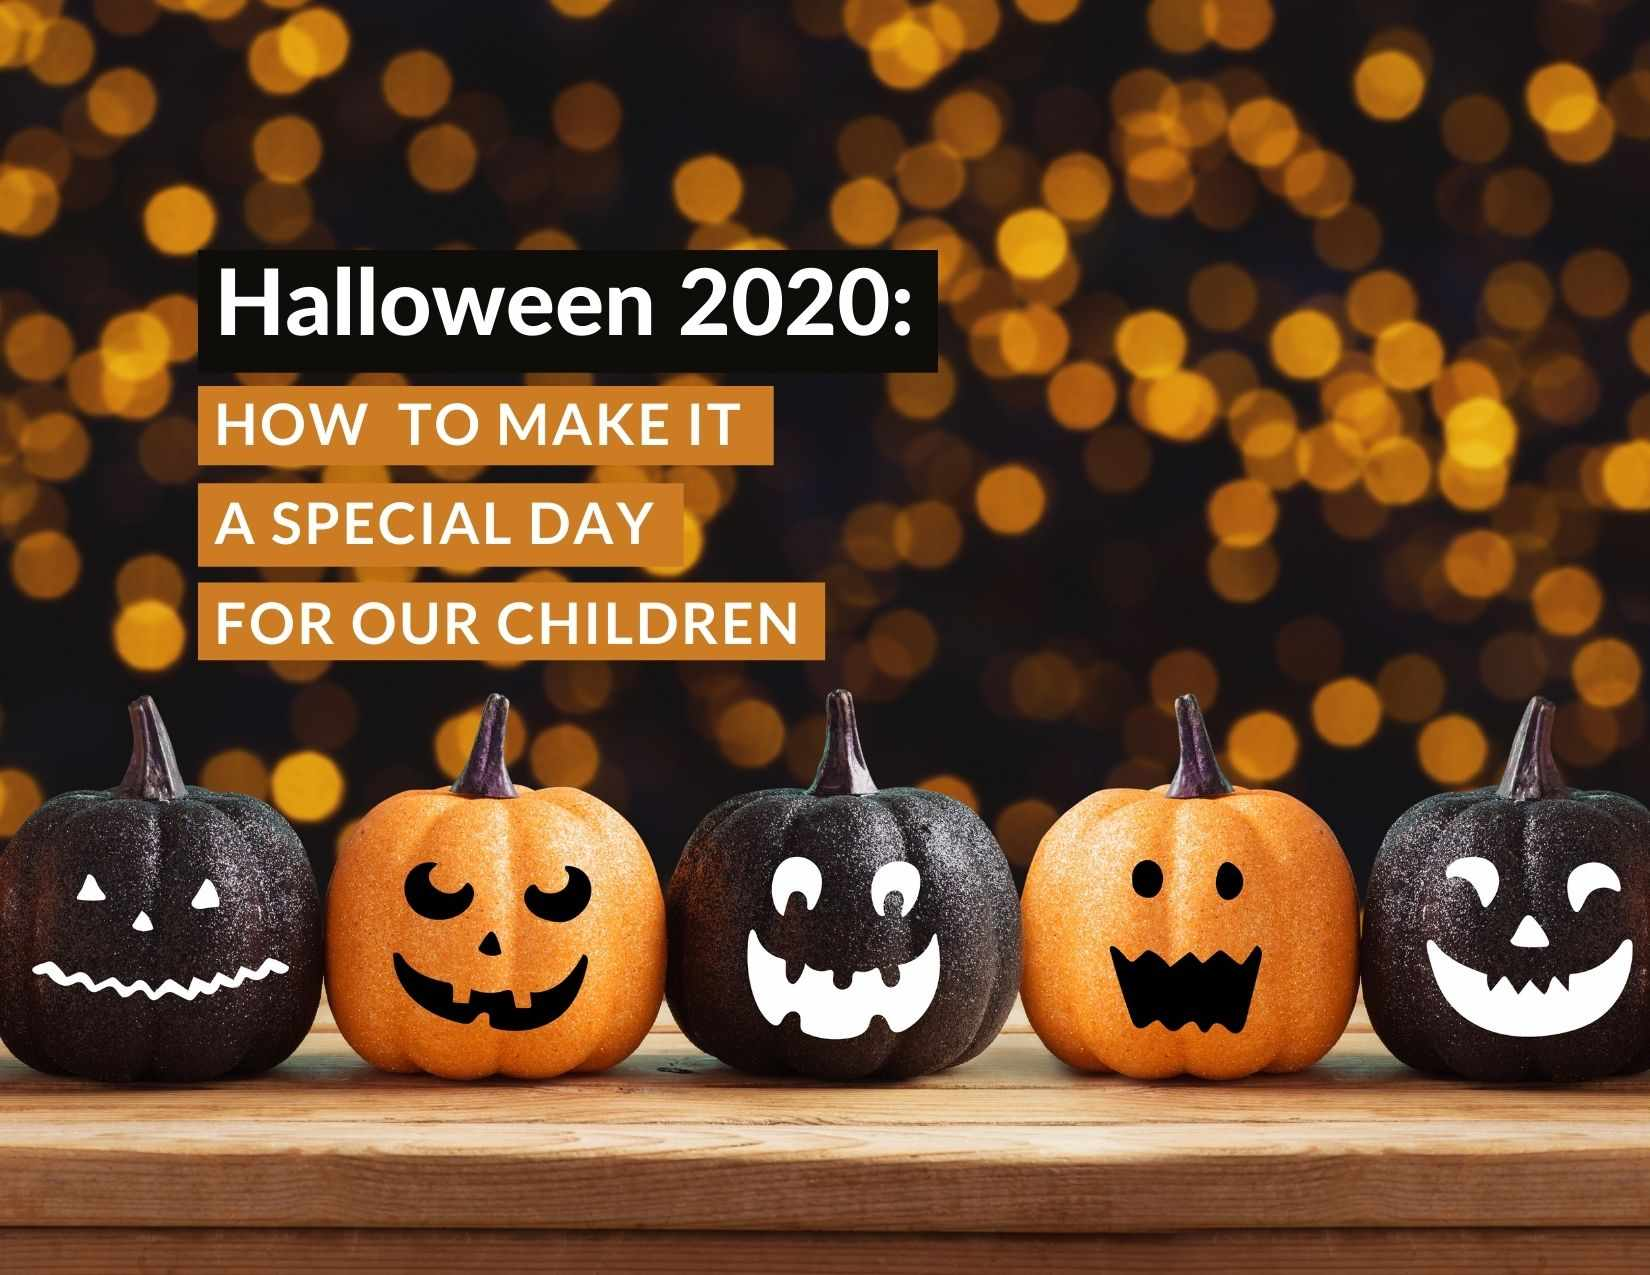 Halloween 2020: How to make it a special day for our children